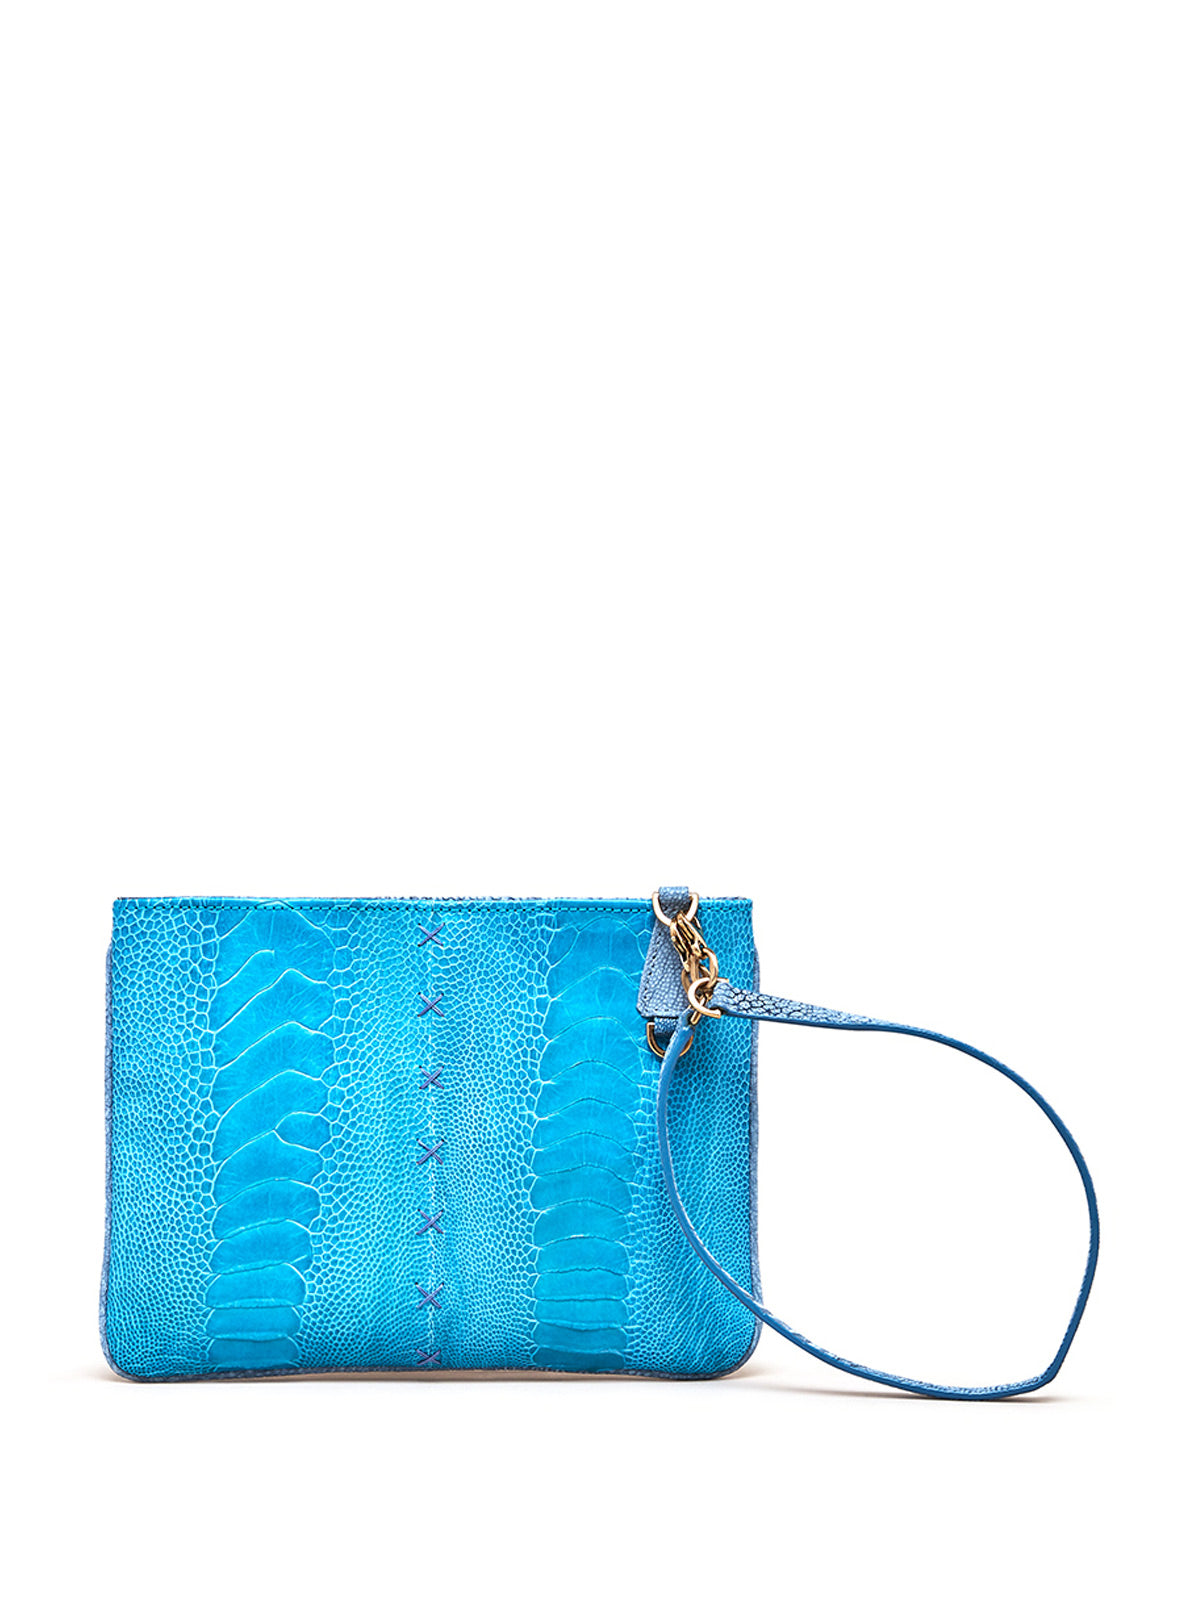 Crystal Blue Aja Clutch with  Blue Ostrich Feather Charm